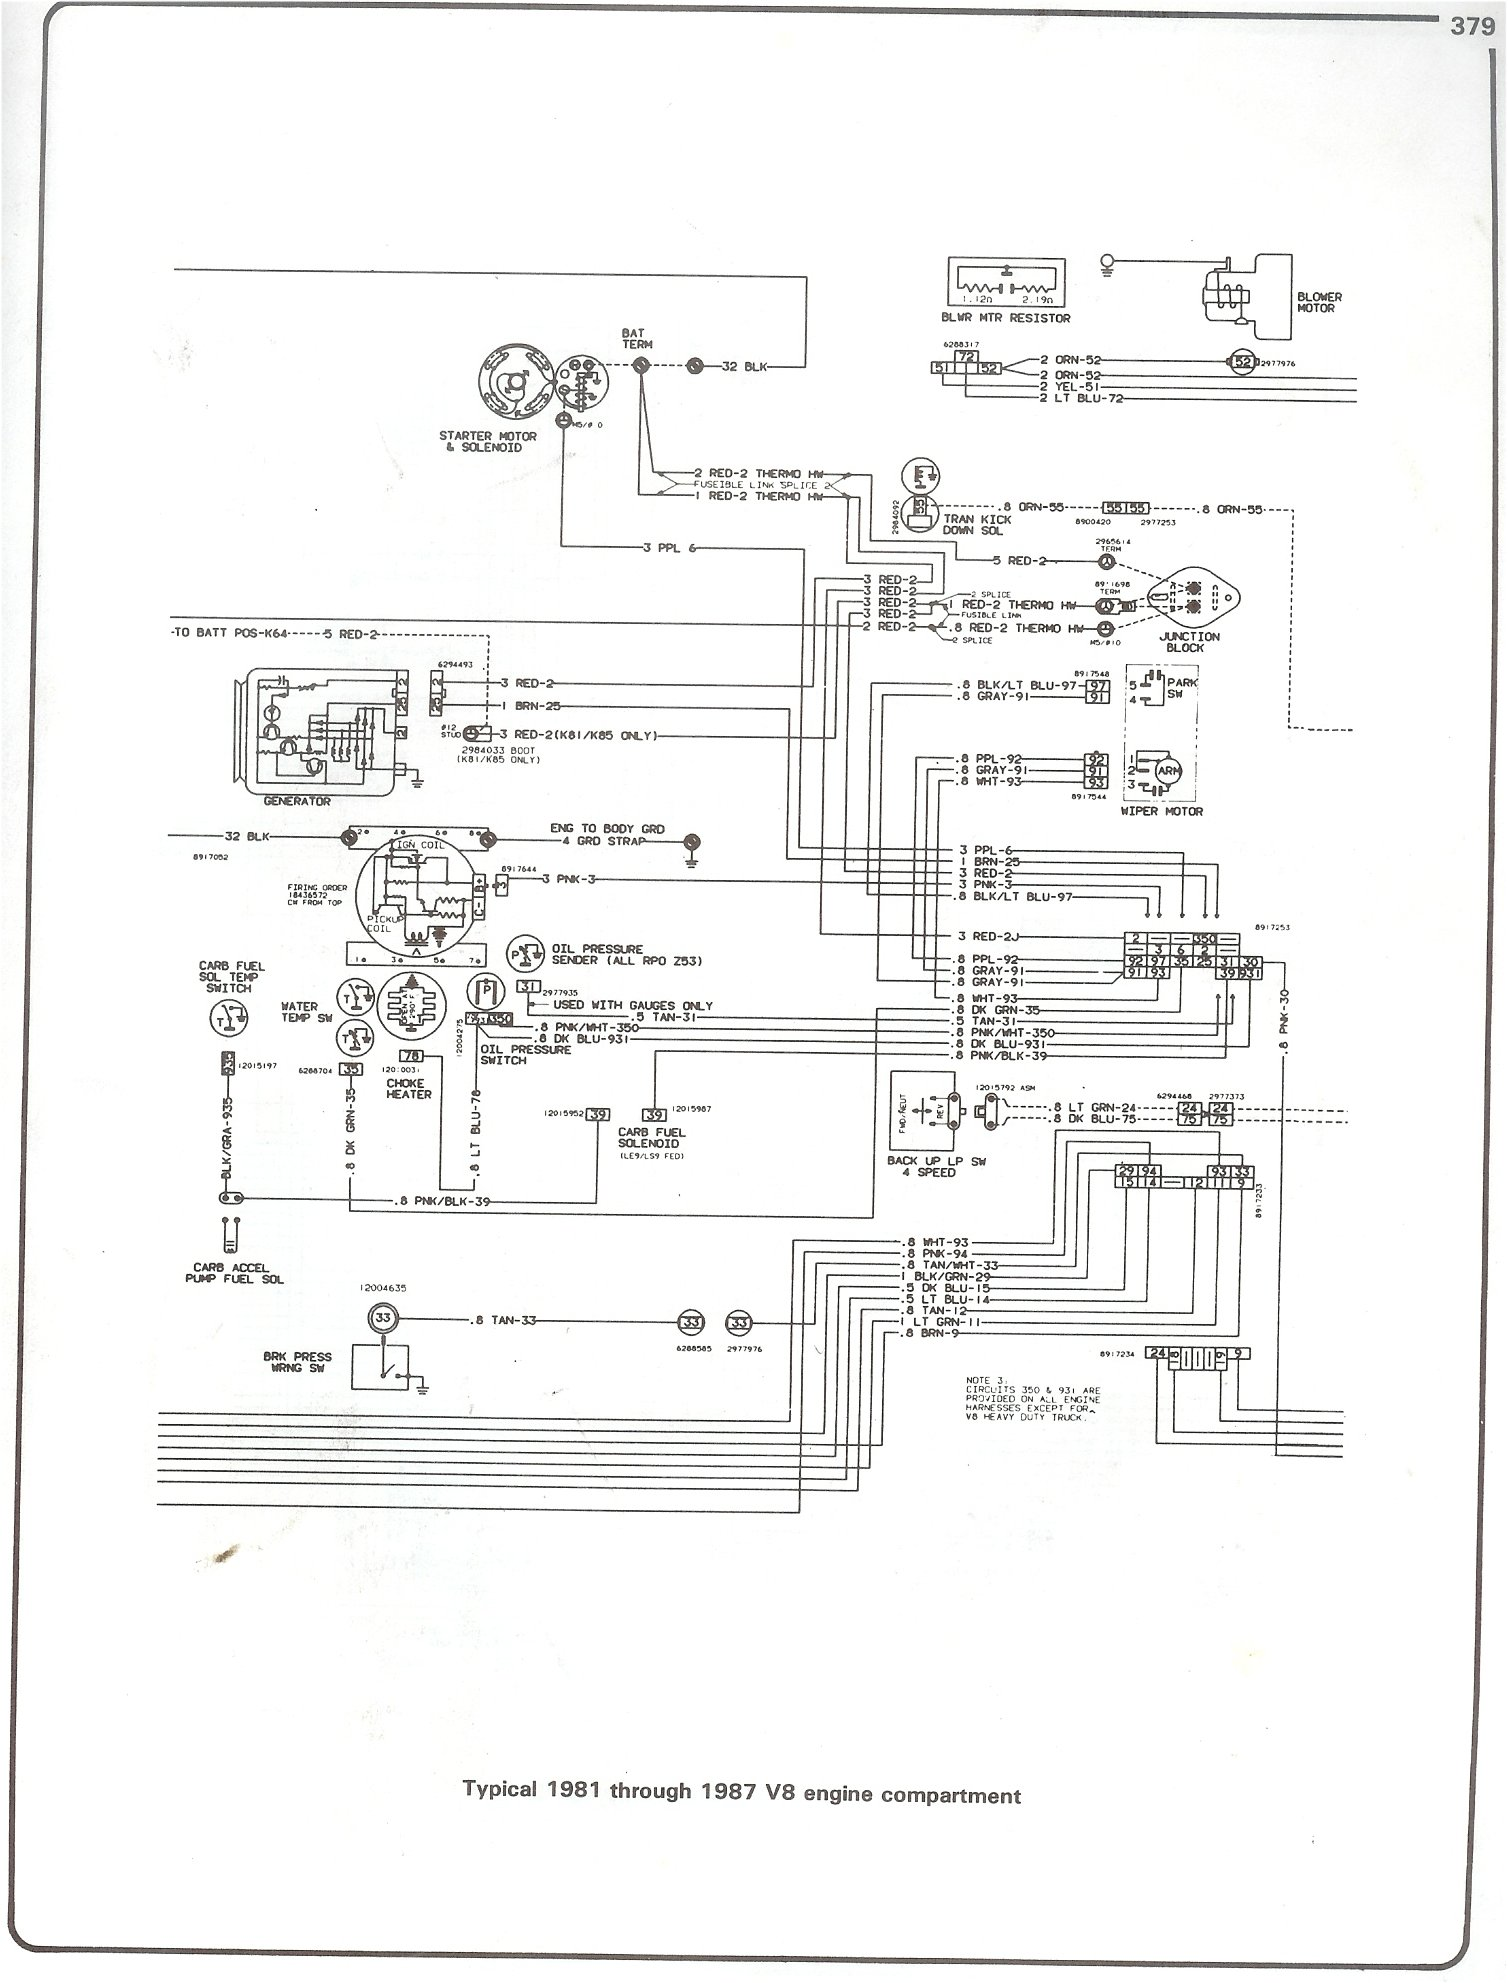 Chevy Radio Wiring Diagram Moreover 2003 Mini Cooper Fuse Box Diagram